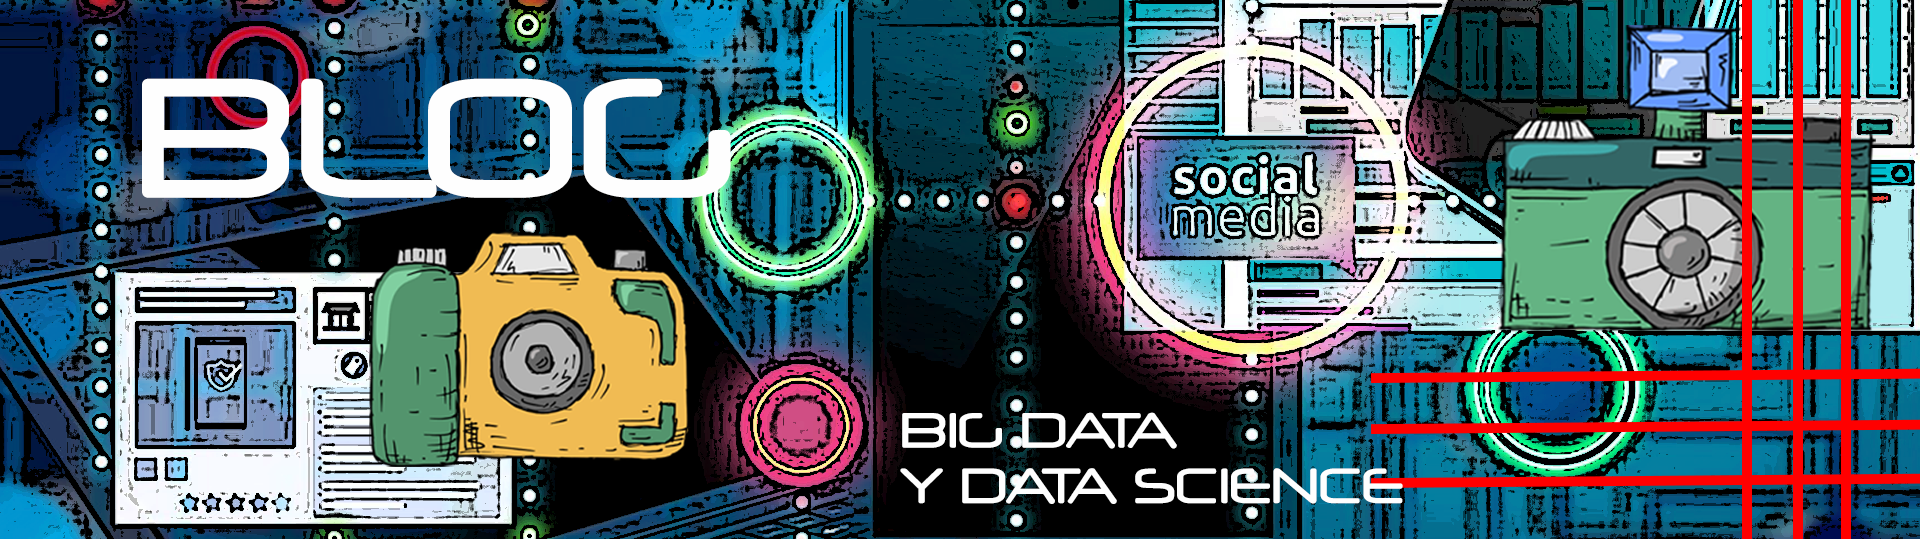 BLOG DEL MÁSTER EN BIG DATA Y DATA SCIENCE ONLINE DE LA UNED